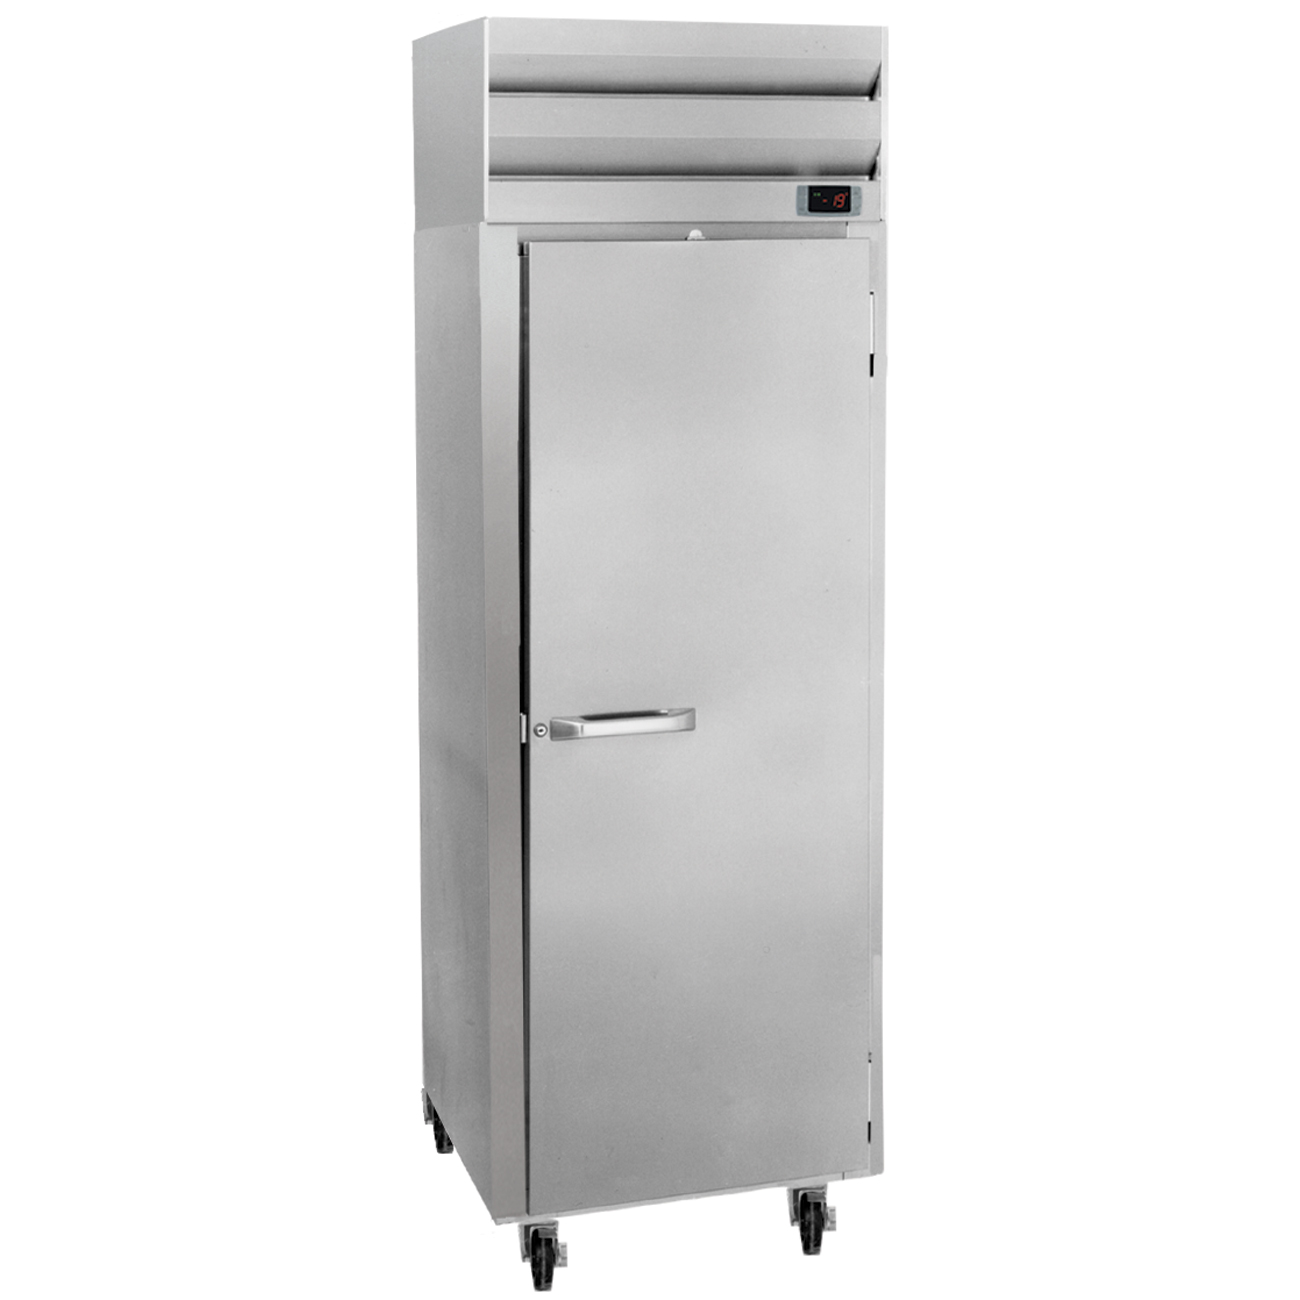 Howard-McCray SF22-S-FF freezer, reach-in